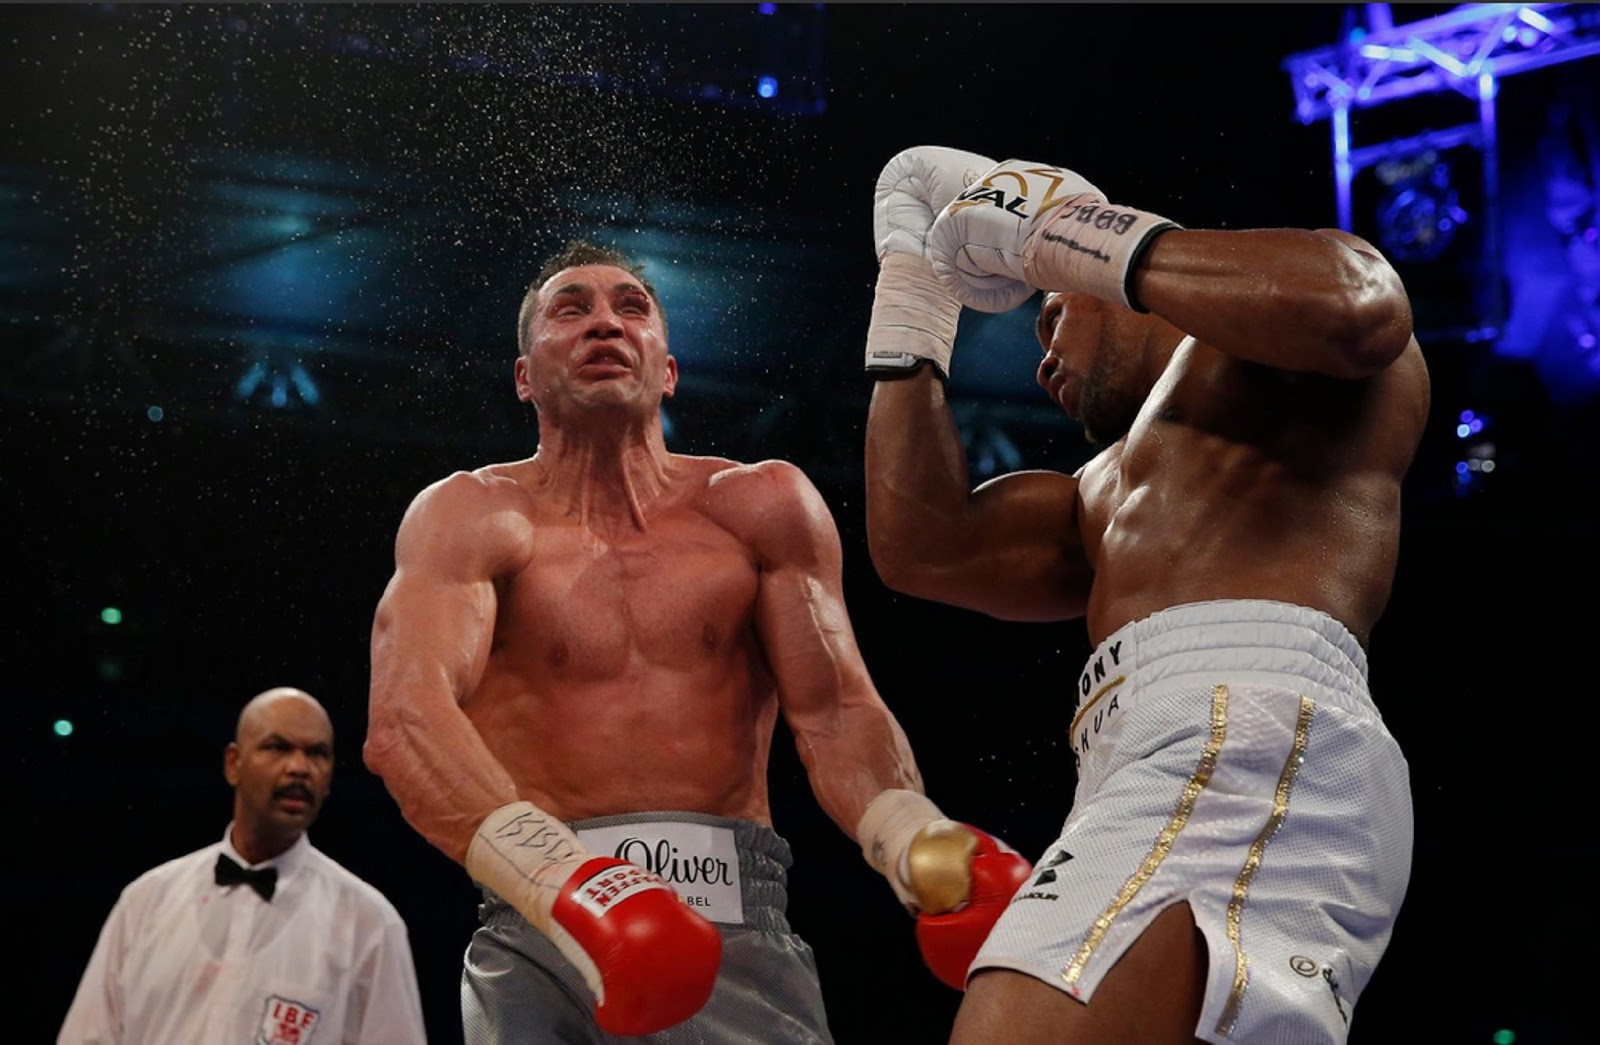 ANTHONY JOSHUA VS. WLADIMIR KLITSCHKO 2